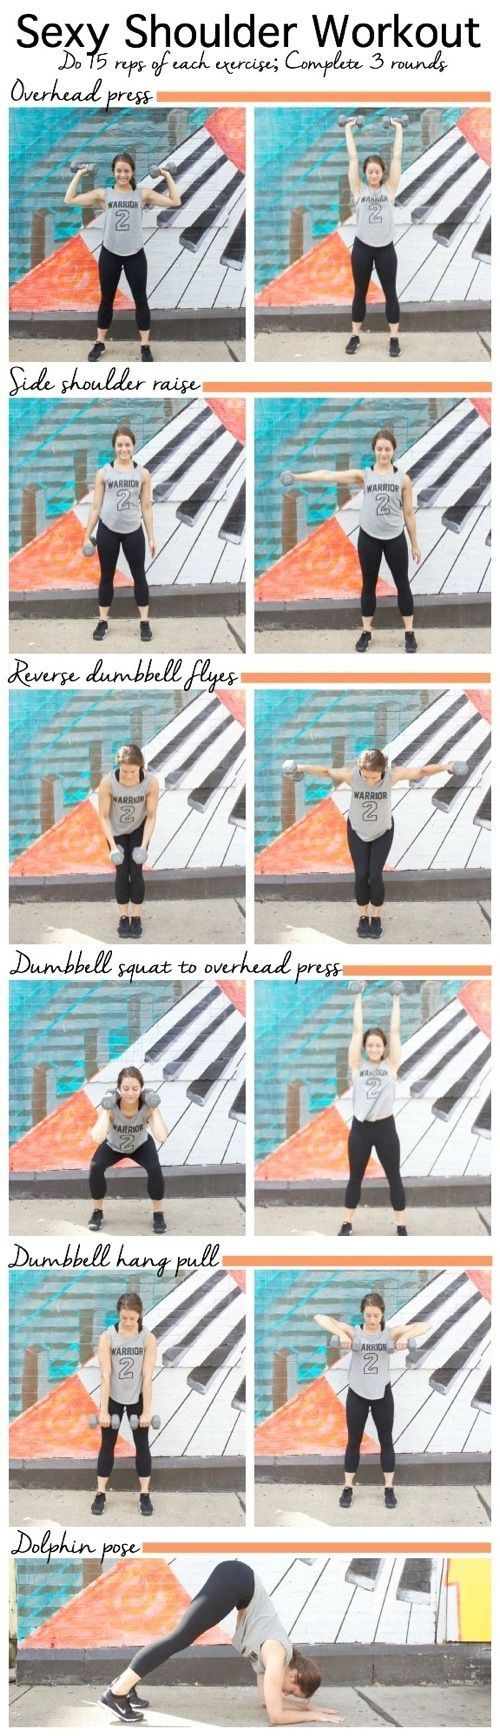 Sexy Shoulder Workout-sculpt your shoulders with this quick shoulder strengthening sequence #workout #fitness by lupita m